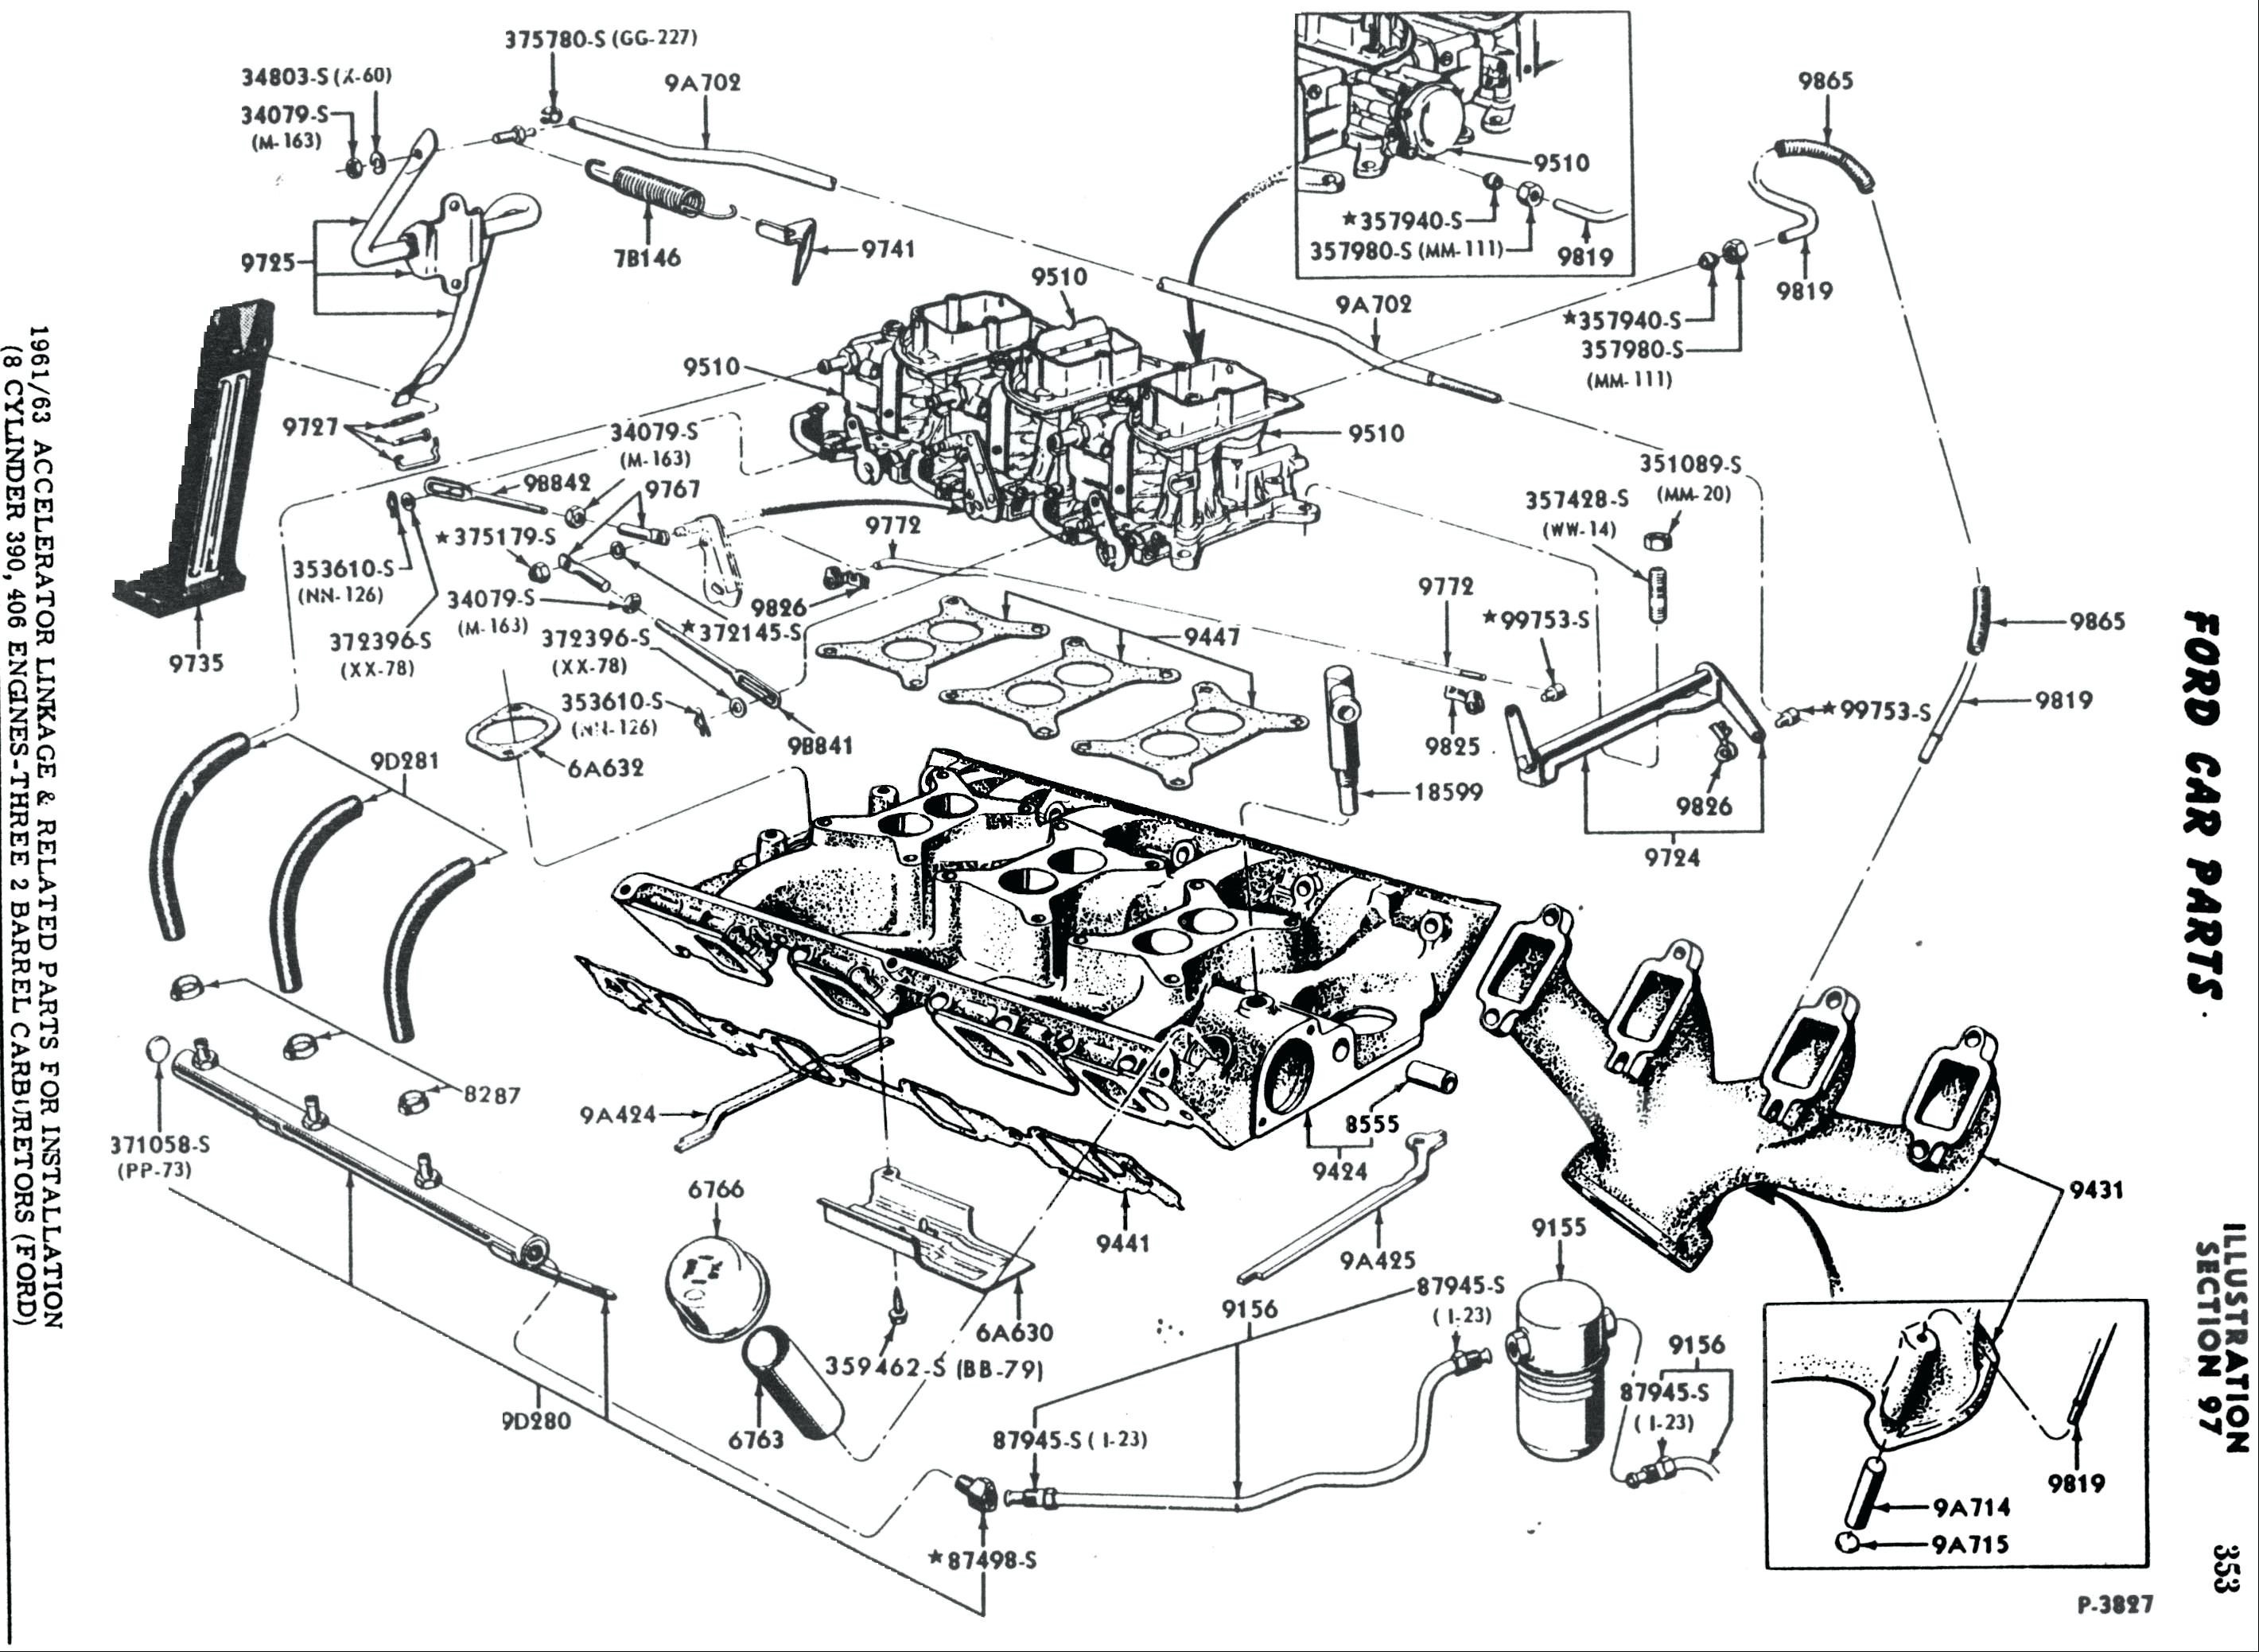 Basic Car Engine Parts Diagram Wrg 7679] Car Engine Schematics Of Basic Car Engine Parts Diagram